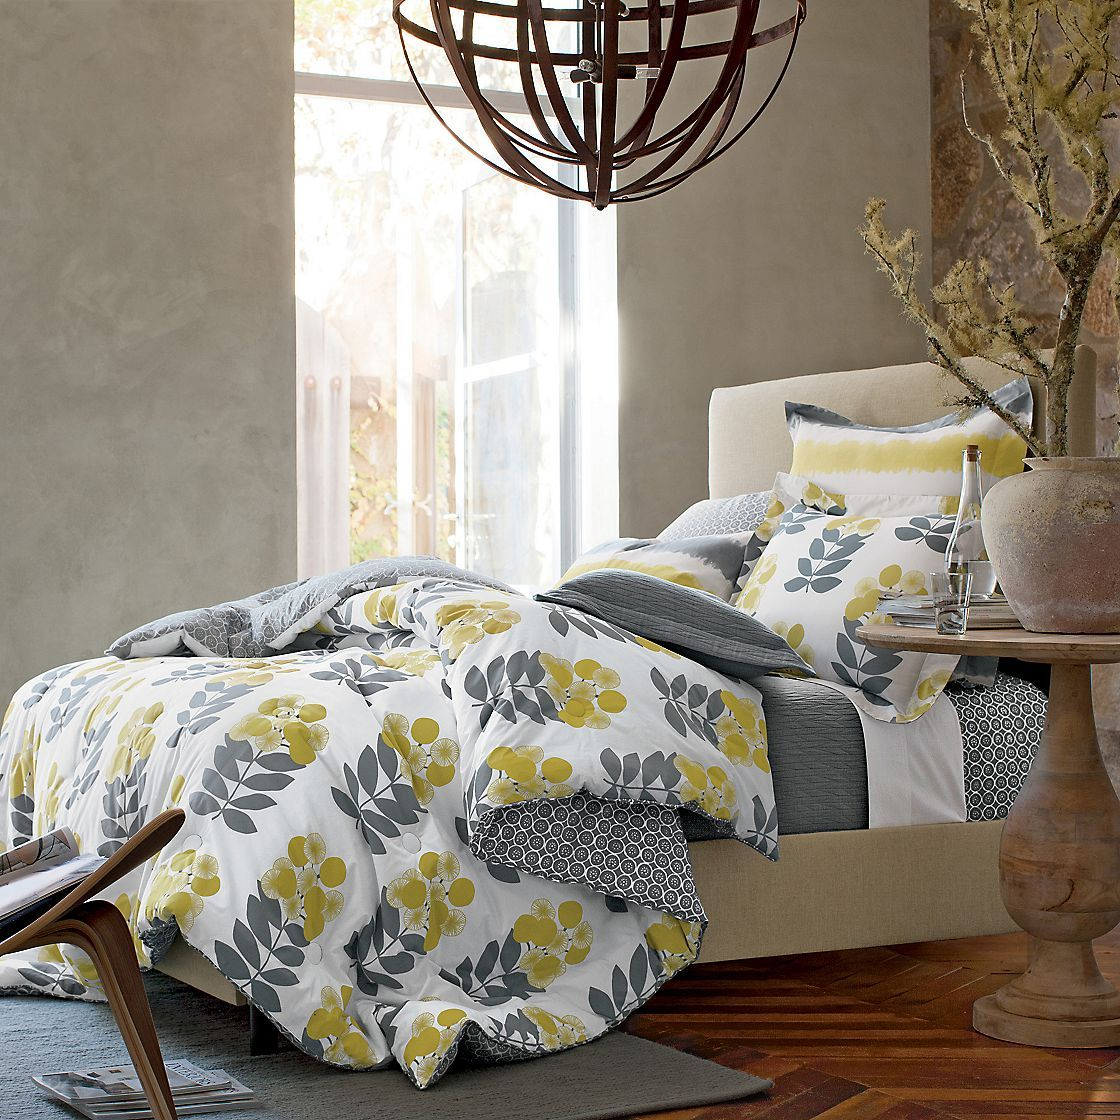 lofthomethe company store wildwood collection comforter. really trendy gray and yellow color